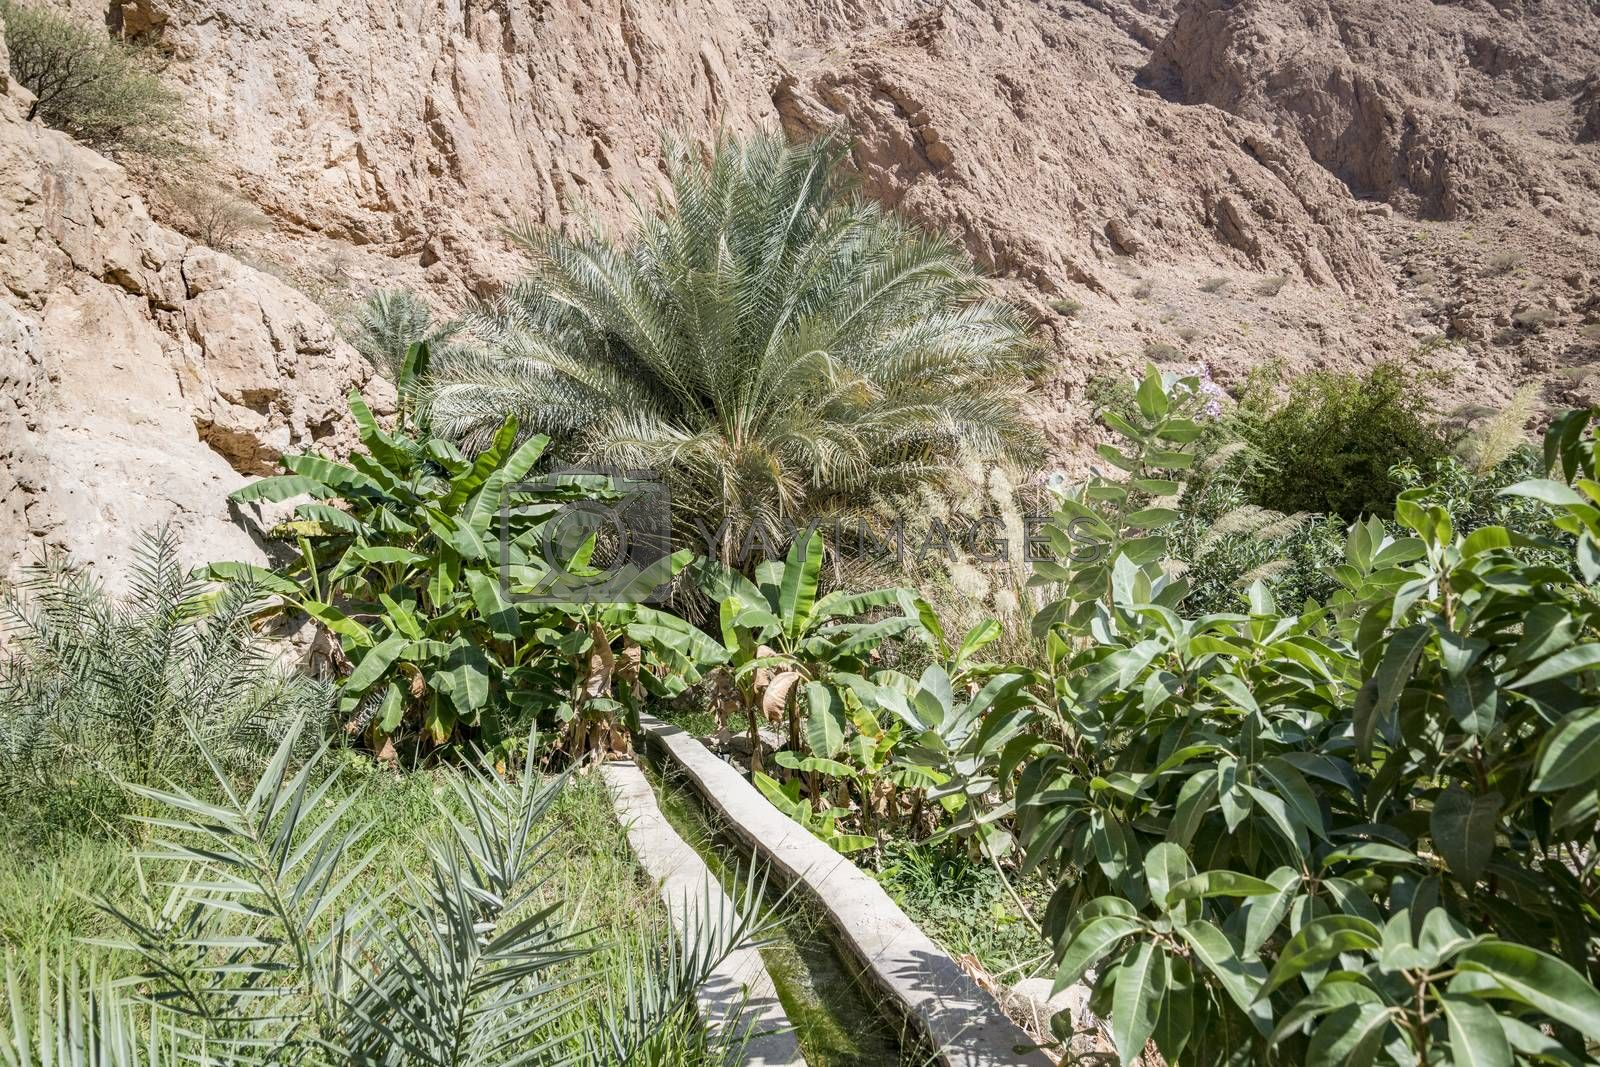 Irrigagtion system and Plantations in the canyon of Wadi Shab, Tiwi, Oman